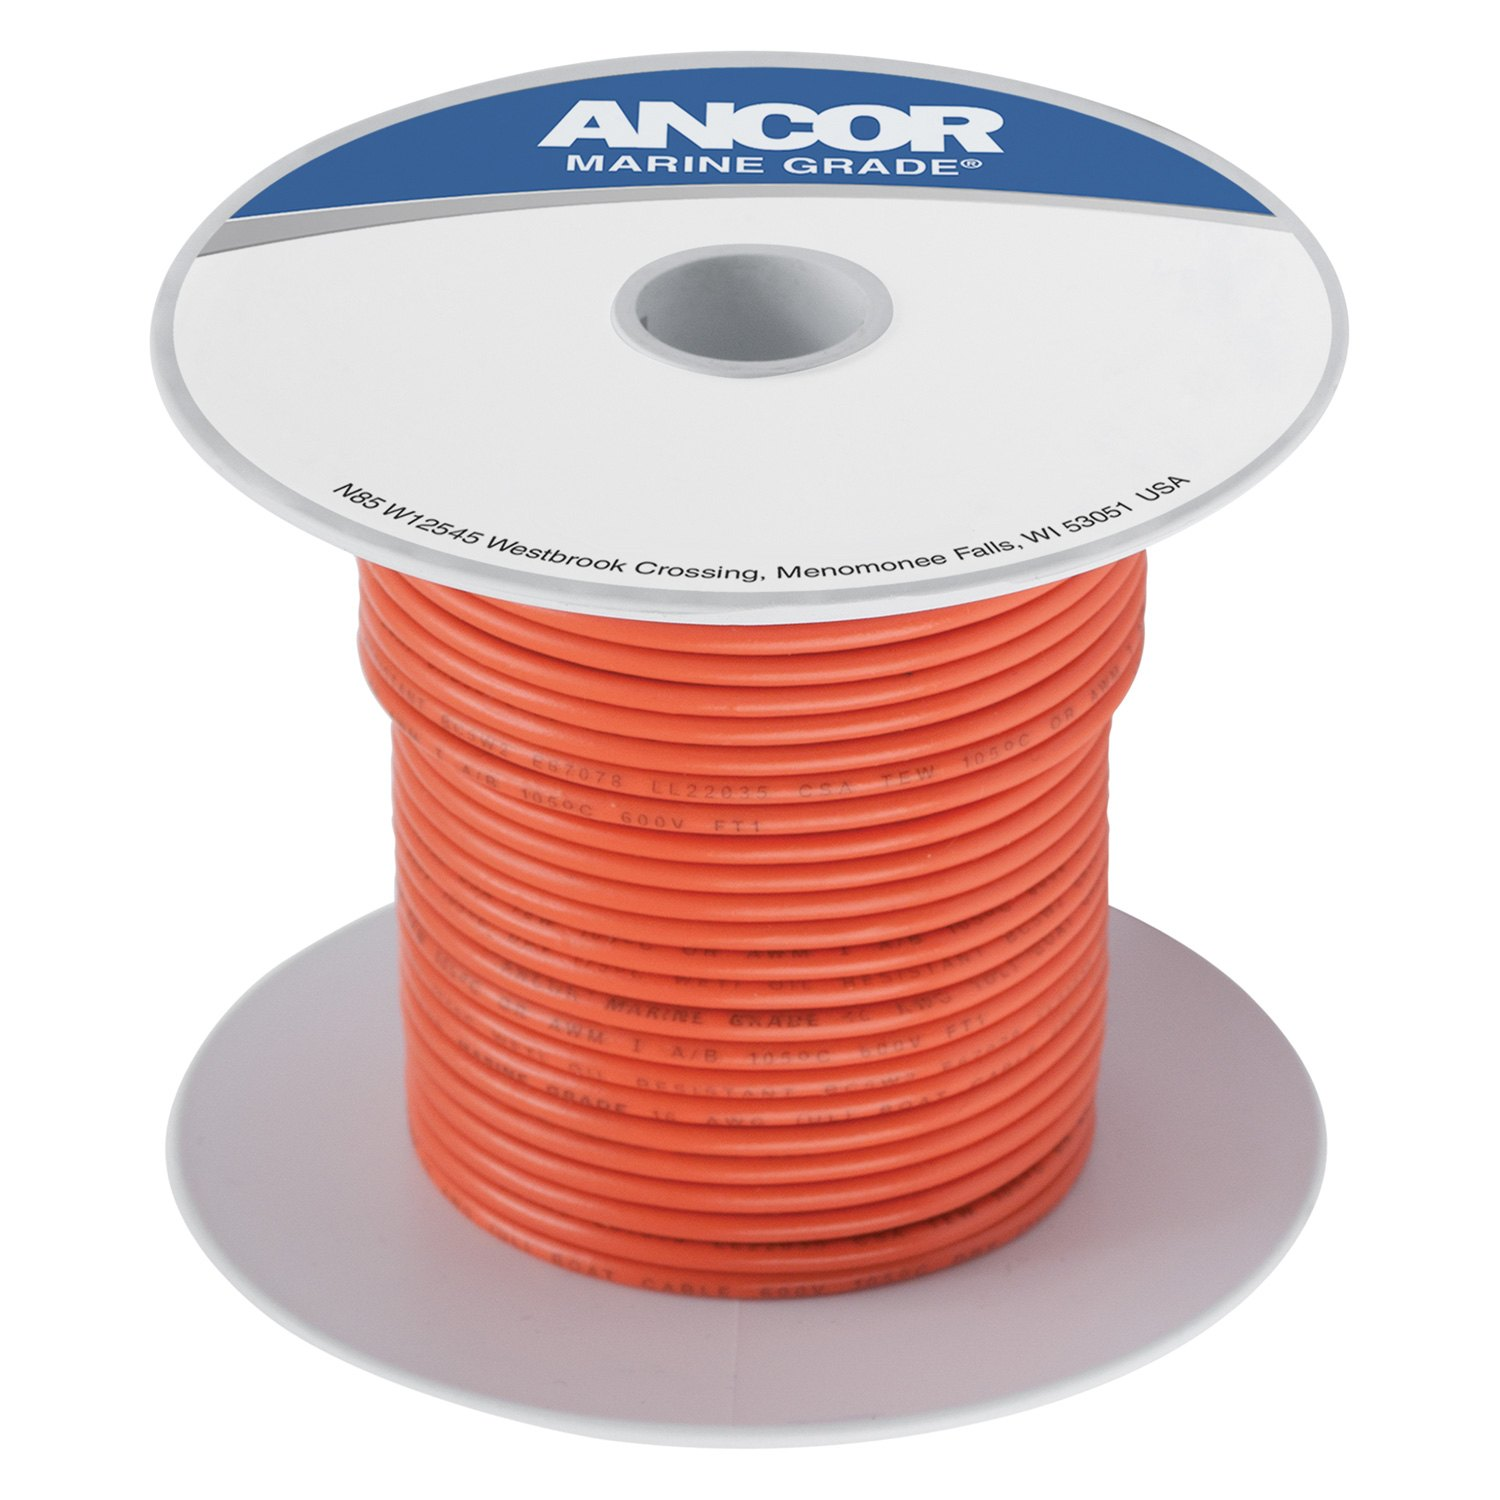 Ancor Tinned Copper Wire Electrical Green Wireancor 18 Awg 250 100 Gray